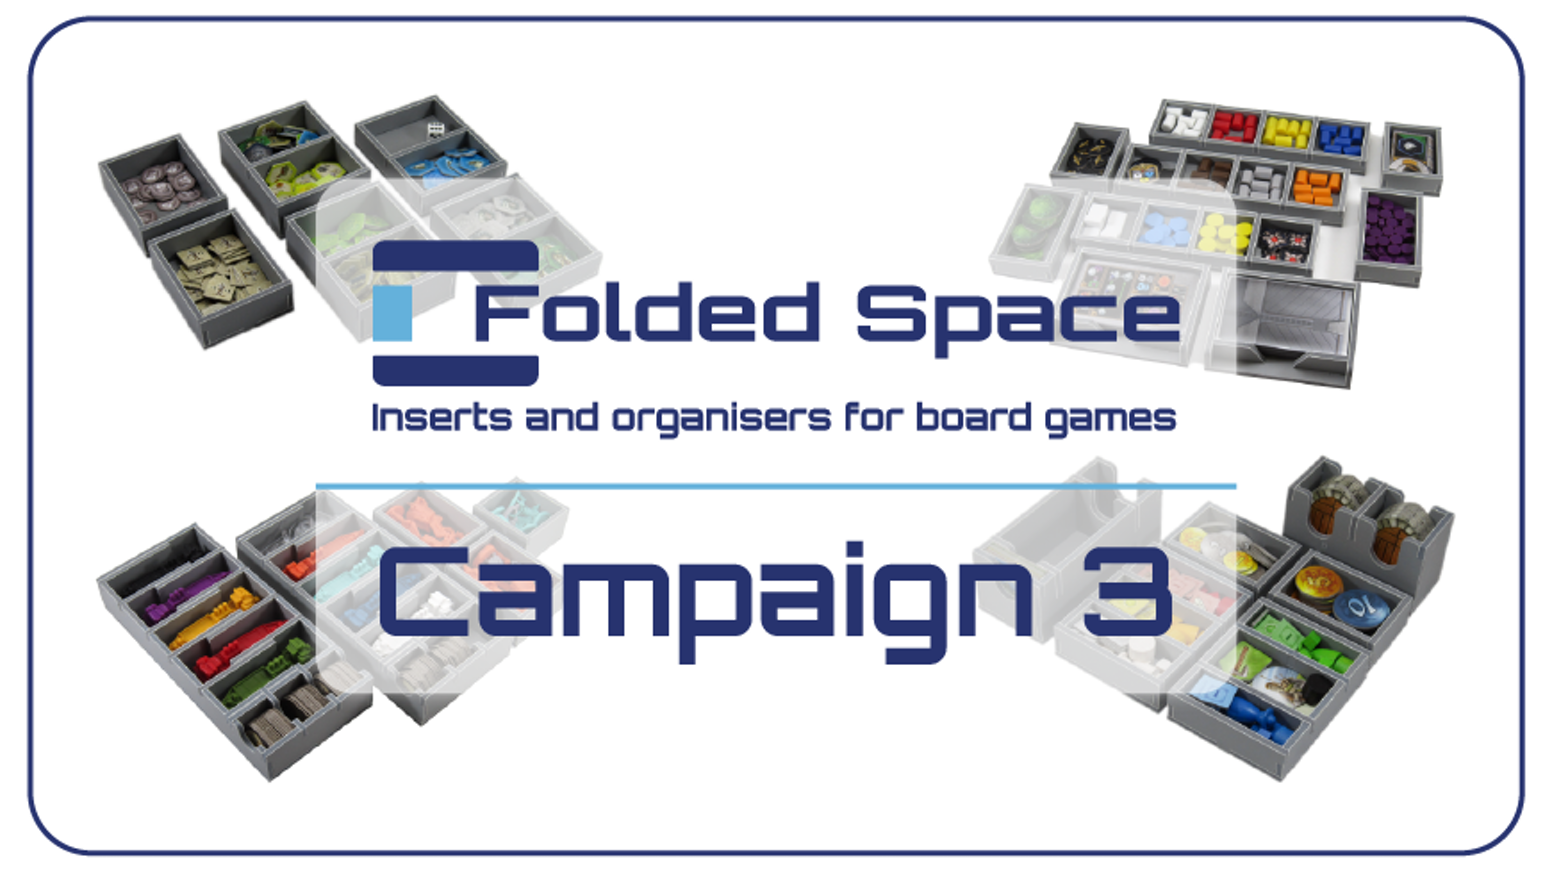 Folded Space's latest campaign adds 16 new inserts to further expand our range and organise even more of your board game collection!